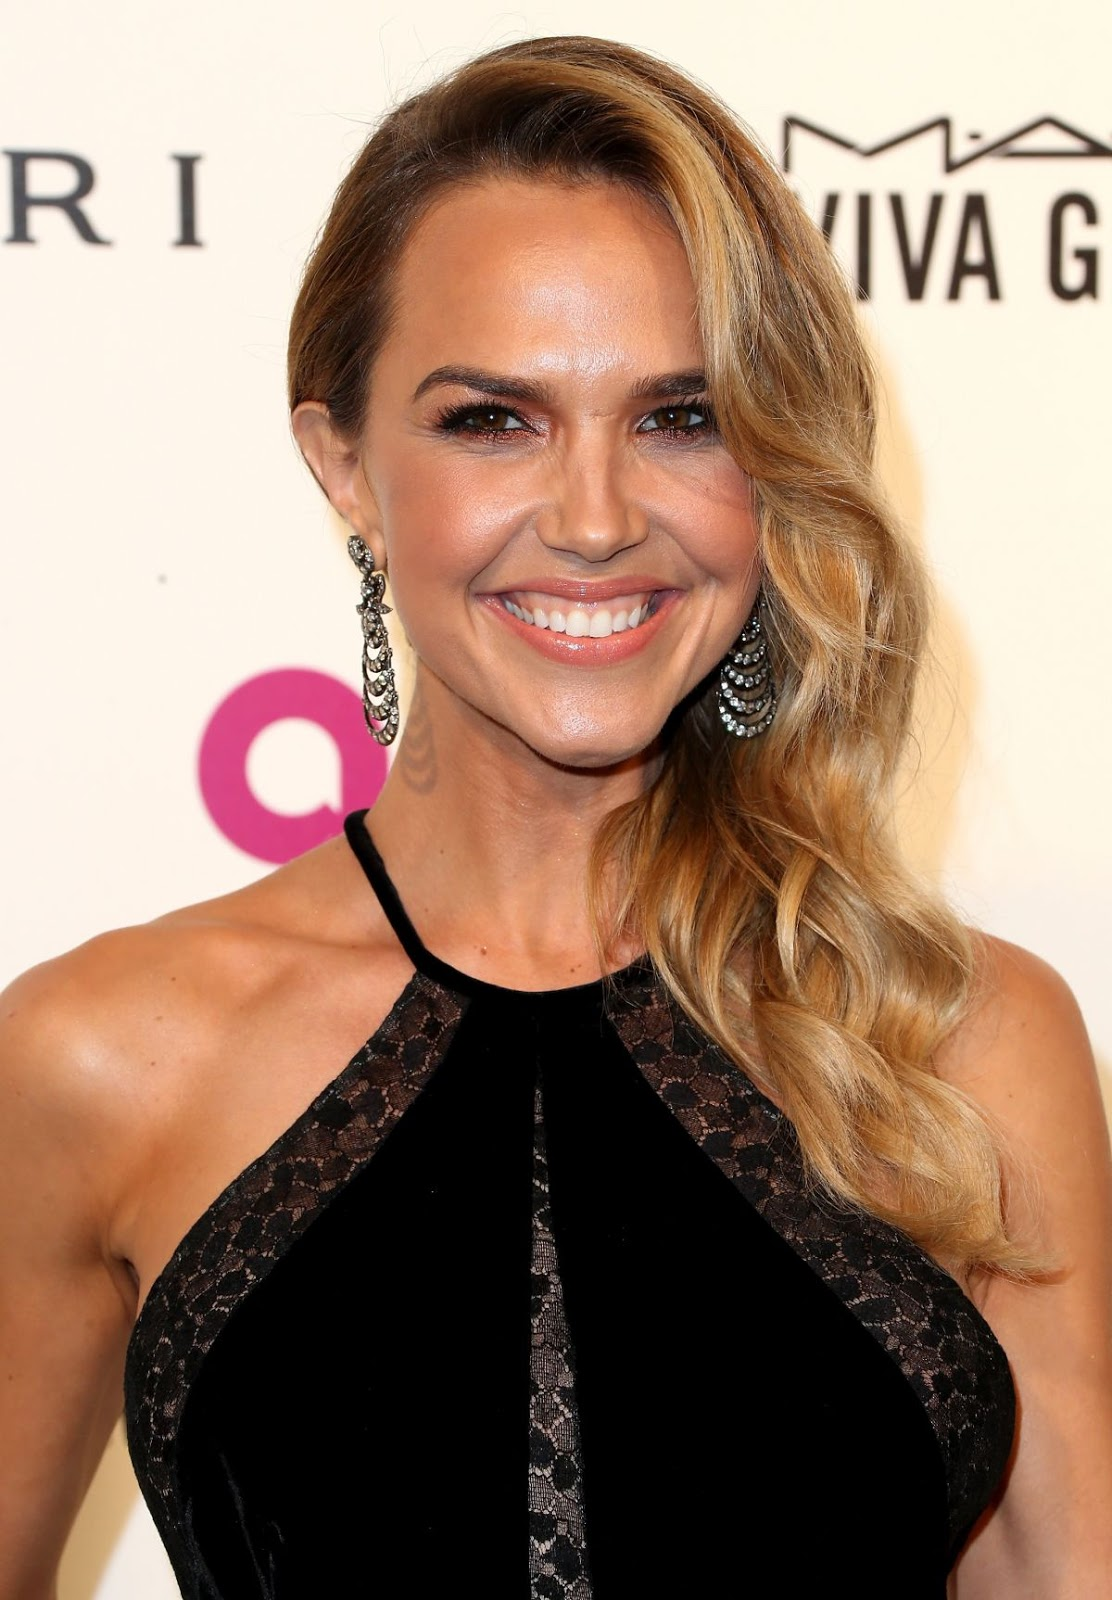 Fifty Shades Freed actress Arielle Kebbel at Elton John Aids Foundation's Oscar Viewing Party